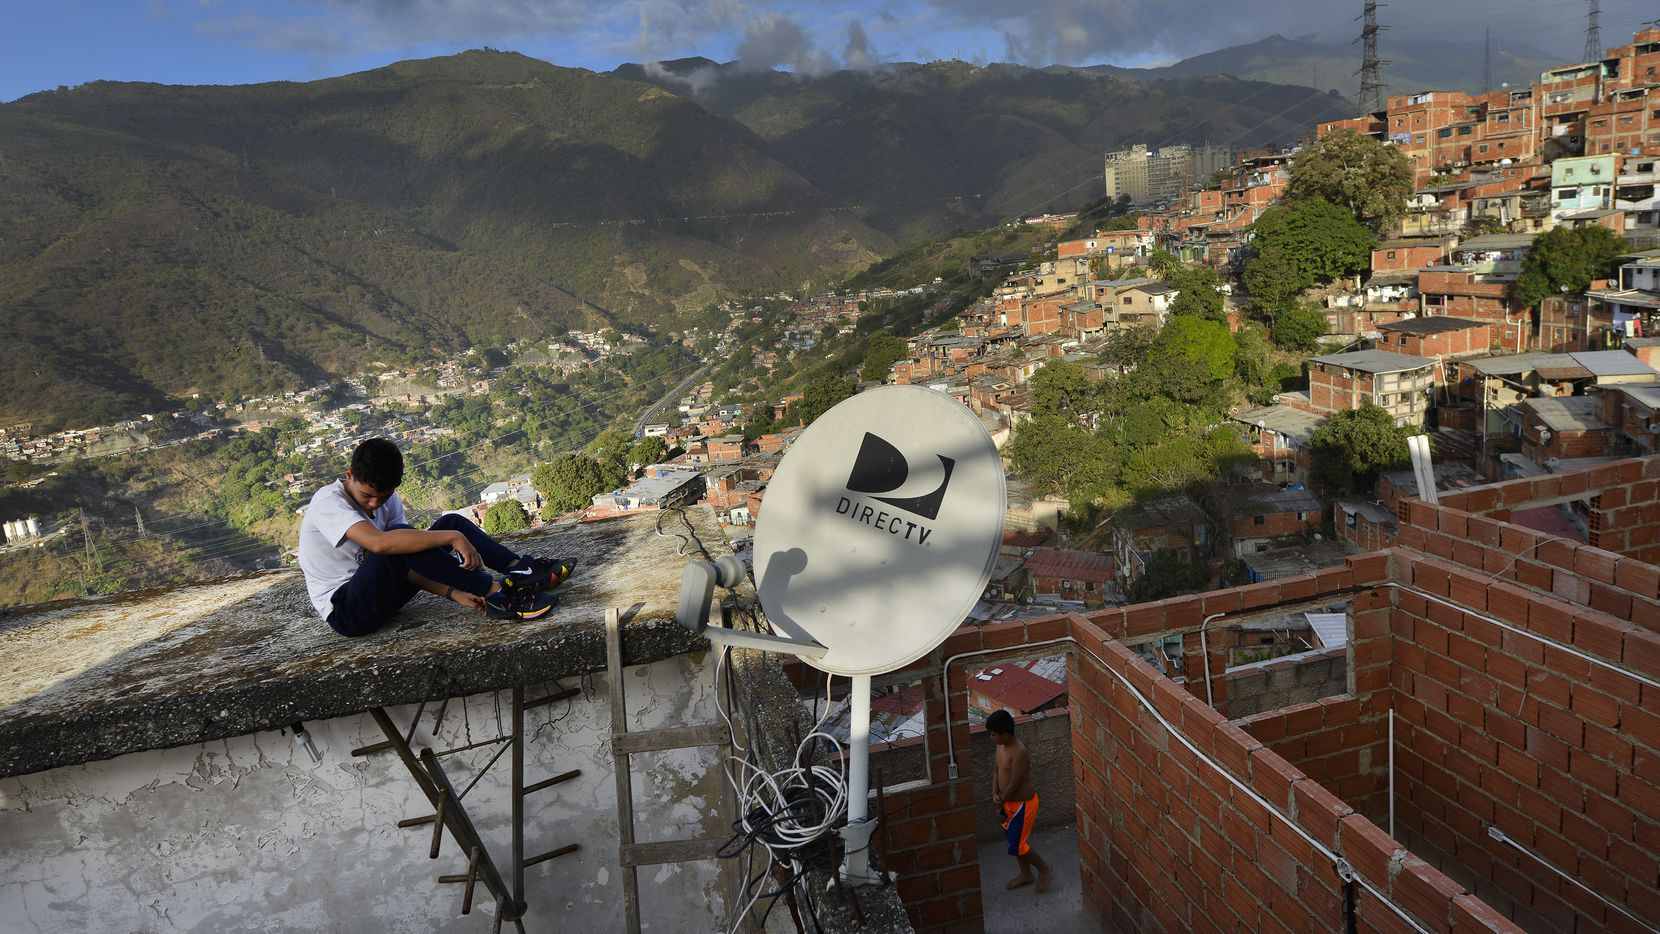 A DirectTV dish stands on home in the Catia neighborhood of Caracas, Venezuela, Thursday, Jan. 9, 2020. Venezuelan President Maduro's opponents want AT&T's DirecTV unit to restore a number of channels it was required to take down from its lineup.